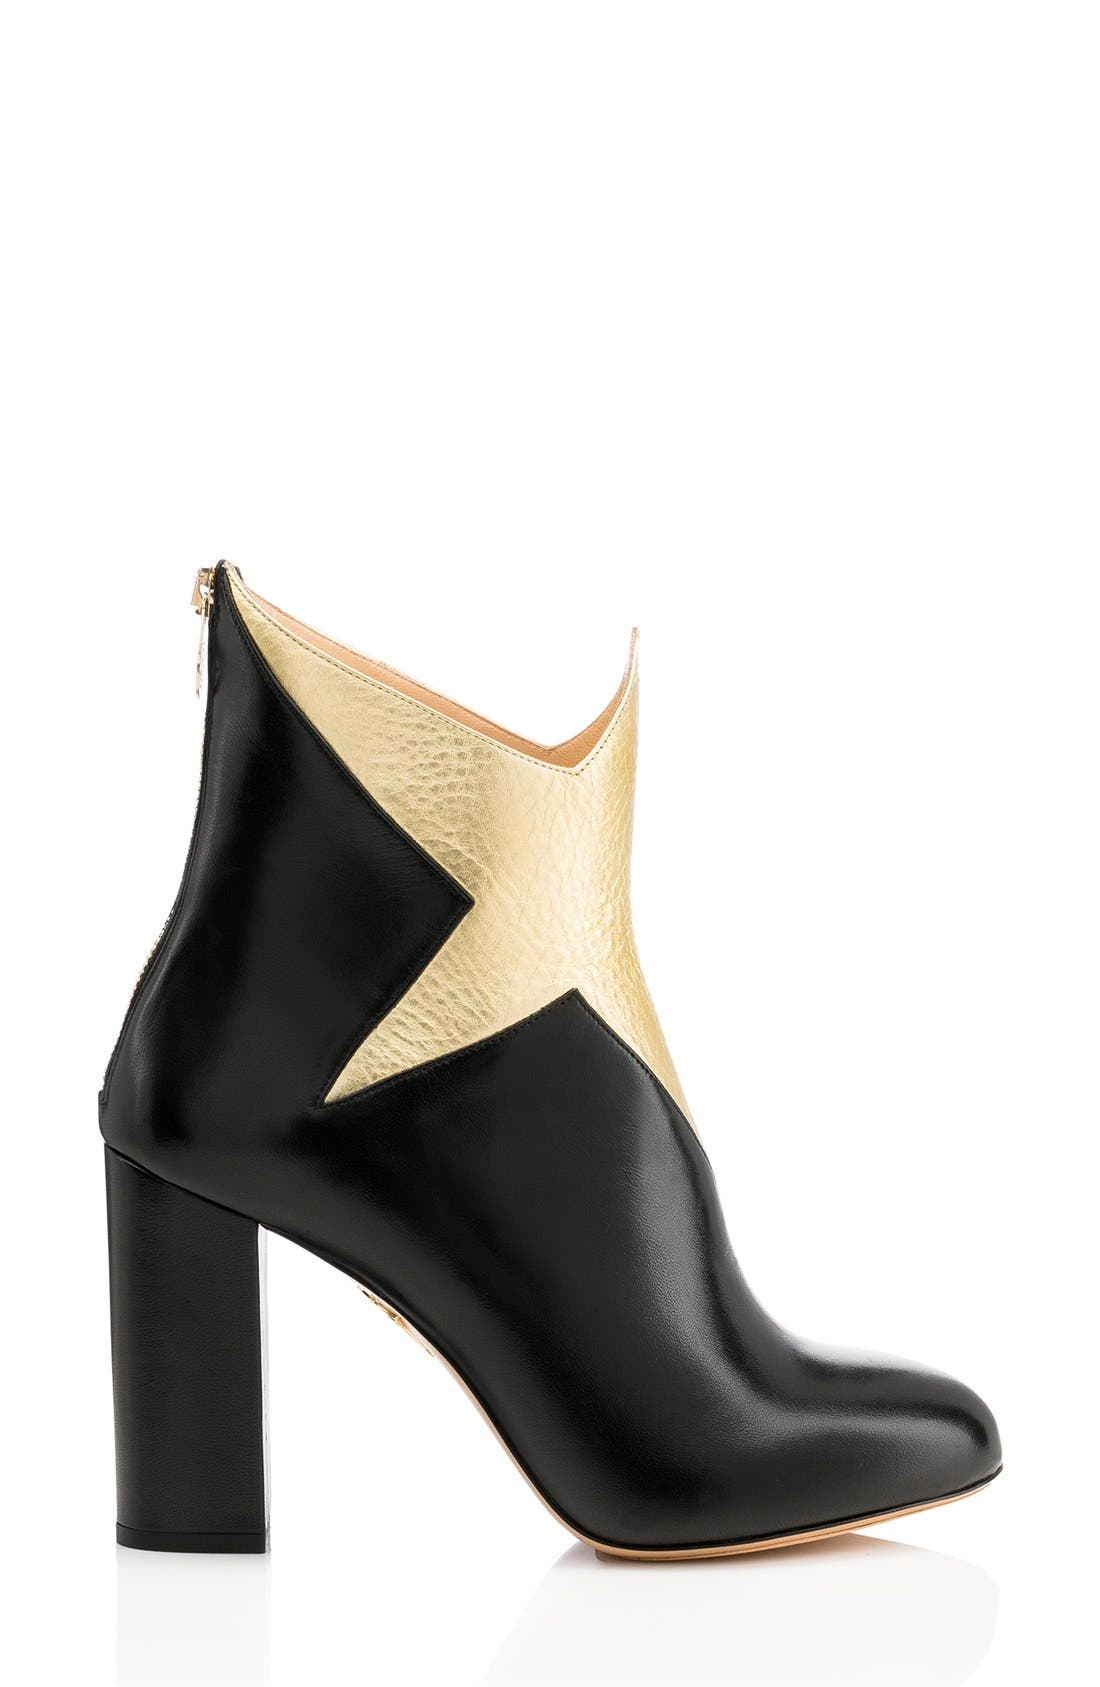 Alternate Image 1 Selected - Charlotte Olympia 'Galactica Star' Bootie (Women)